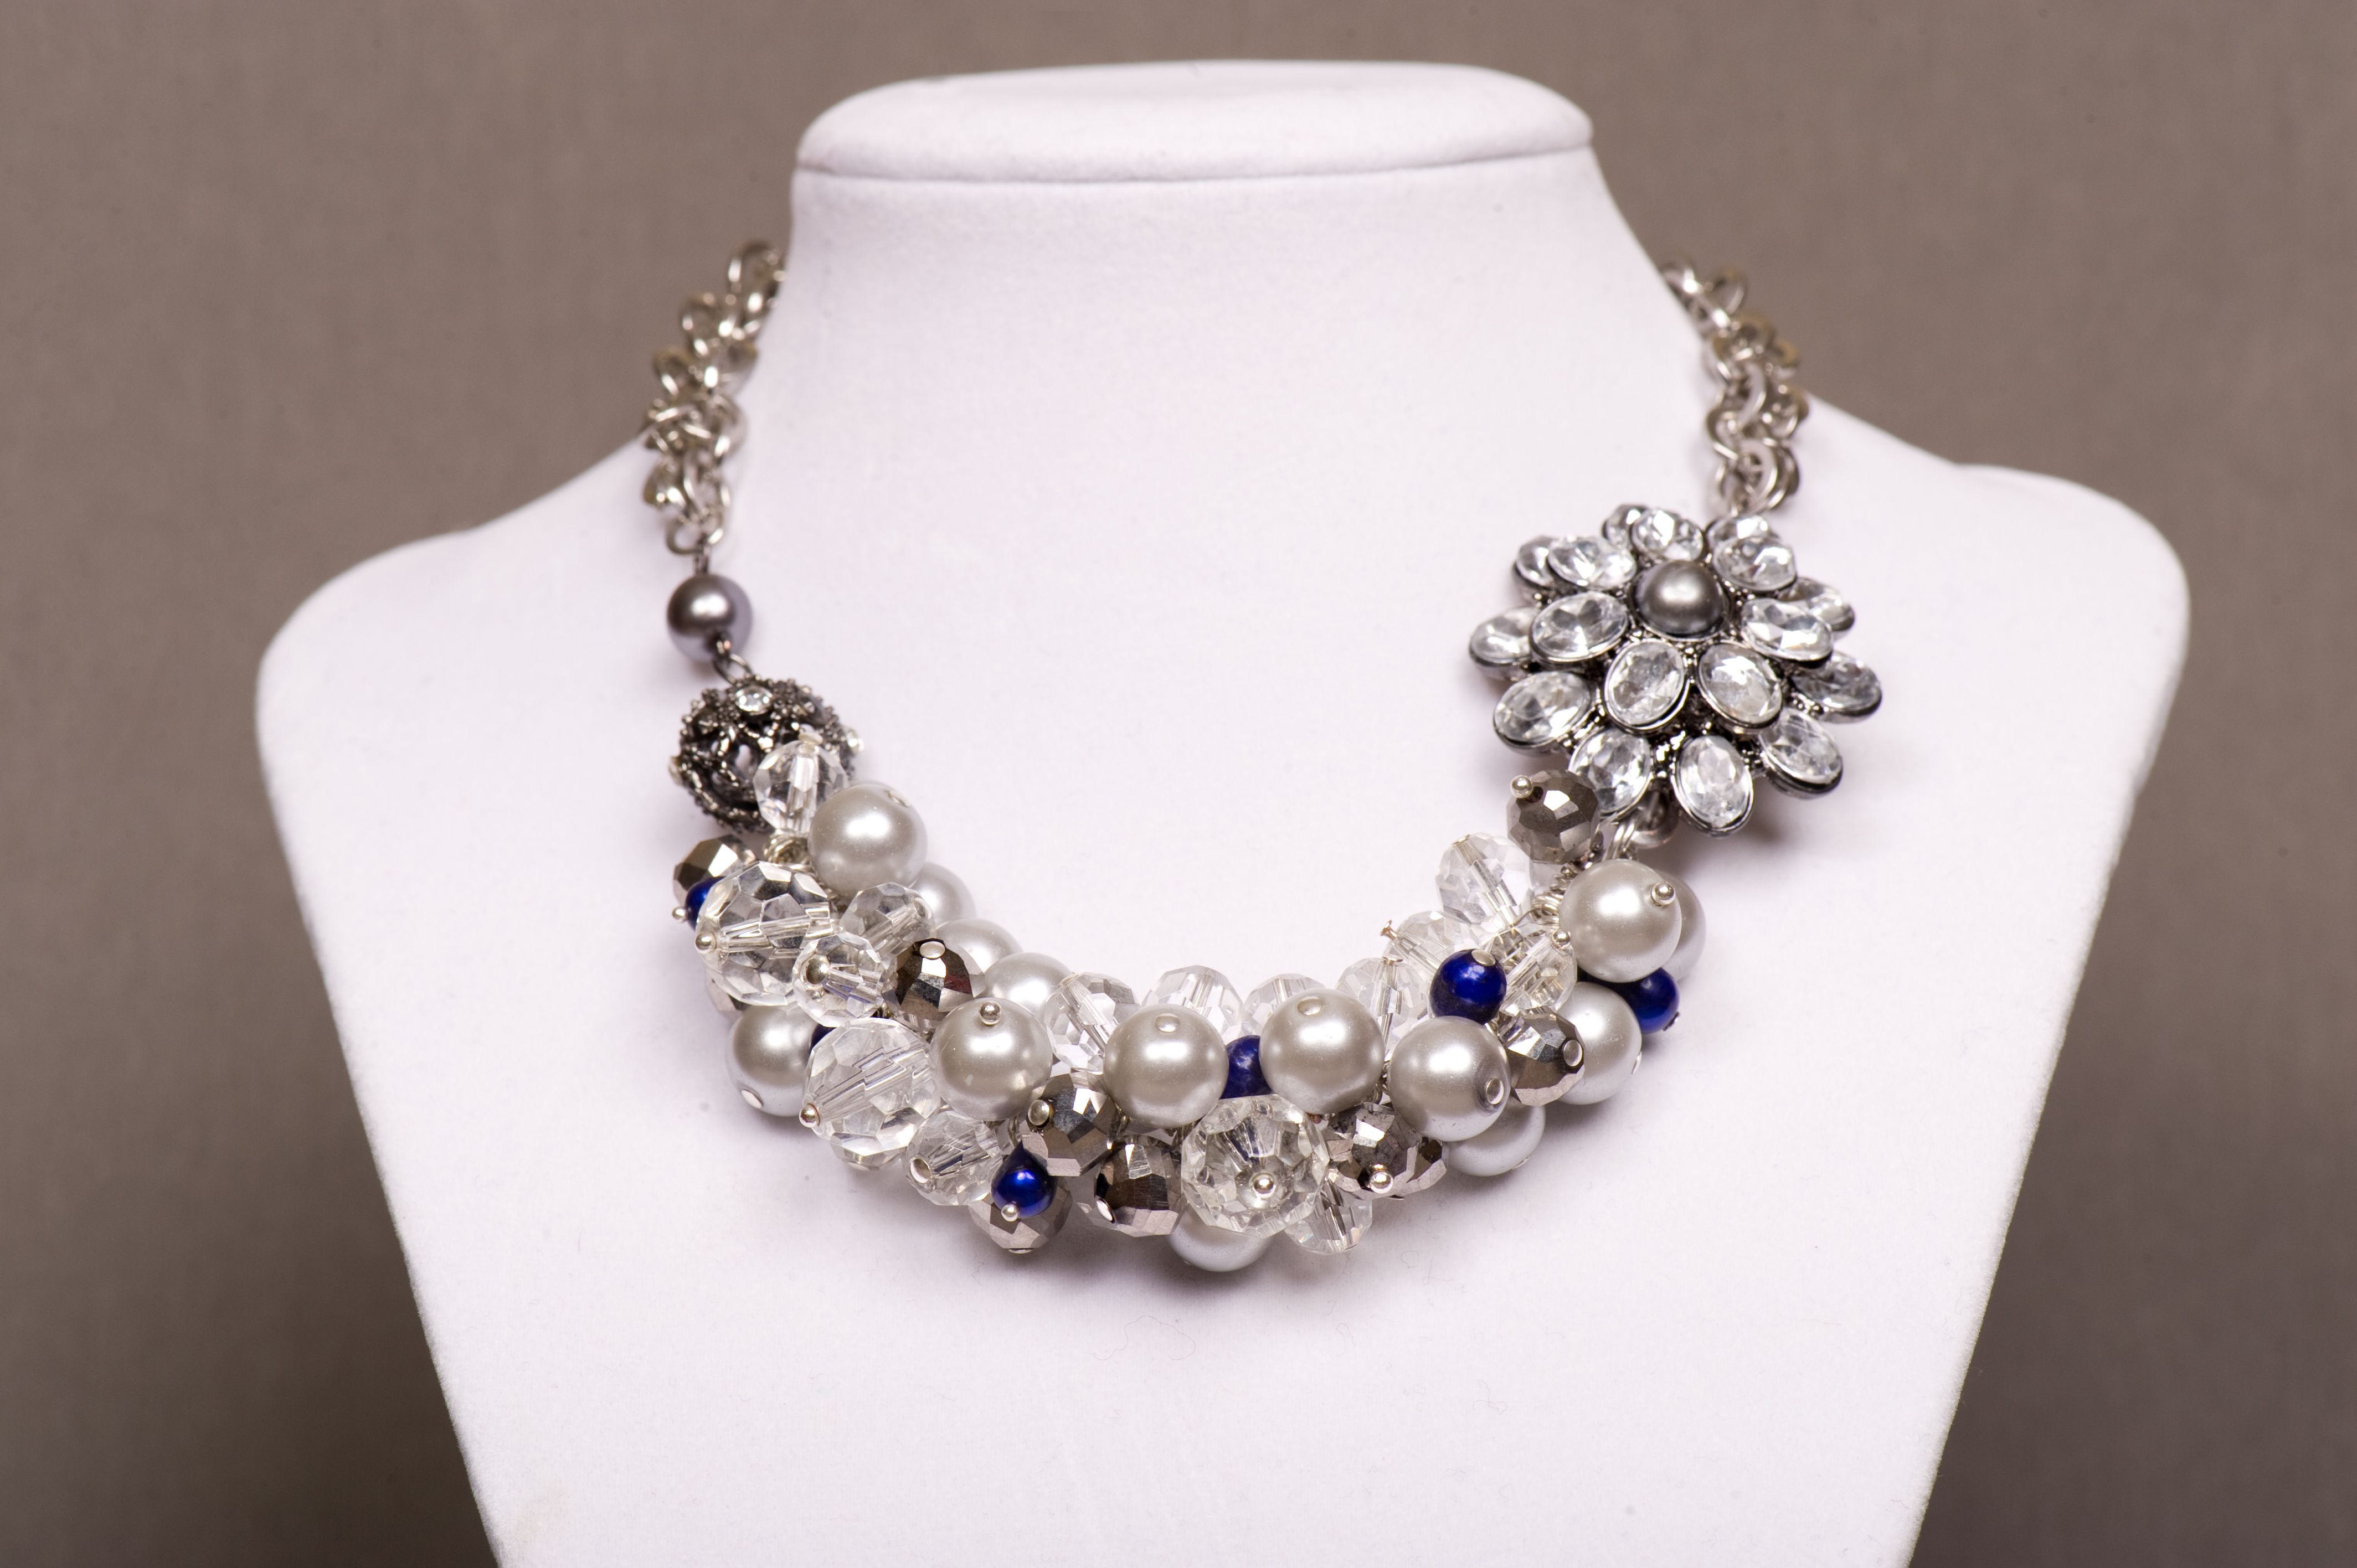 """Item 14203:  Mommy & Me Collection:  14"""" Glass pearl and faceted glass bead cluster necklace and nickel/crystal flower brooch (Blue freshwater pearls optional). LObster clasp $60.00"""